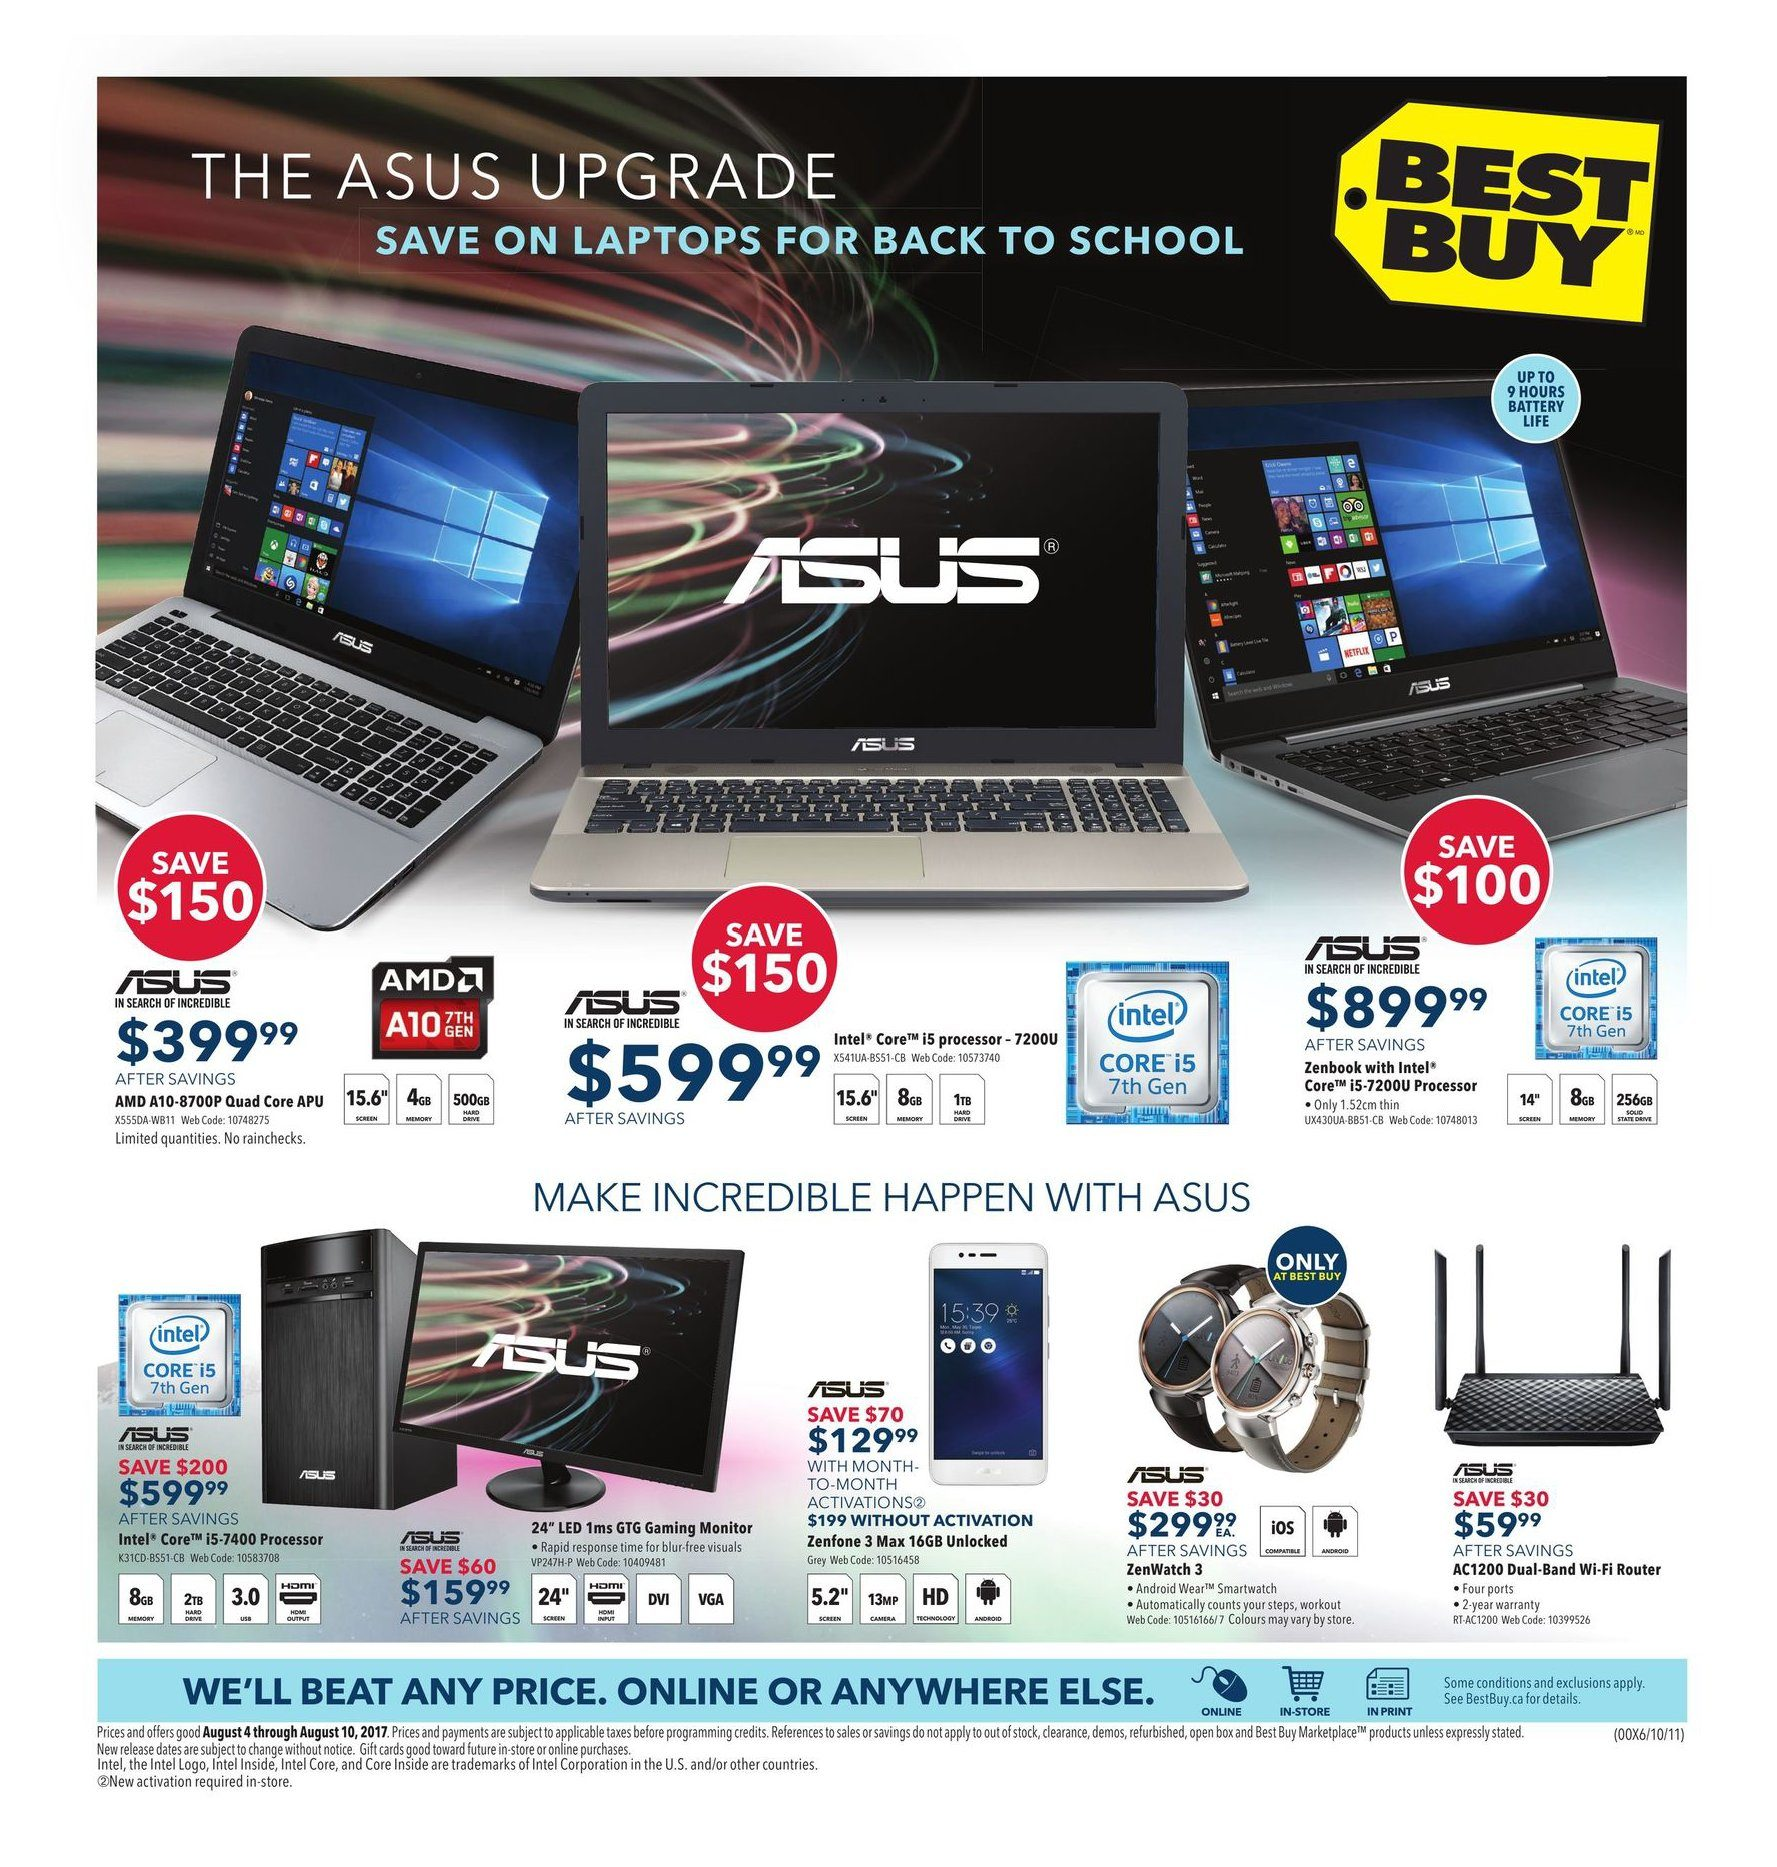 Home · Philips Gc 506 39 1500 Watt; Page - 2. Best Buy Weekly Flyer Weekly Save on Laptops for Back to School Aug 4 10 RedFlagDeals